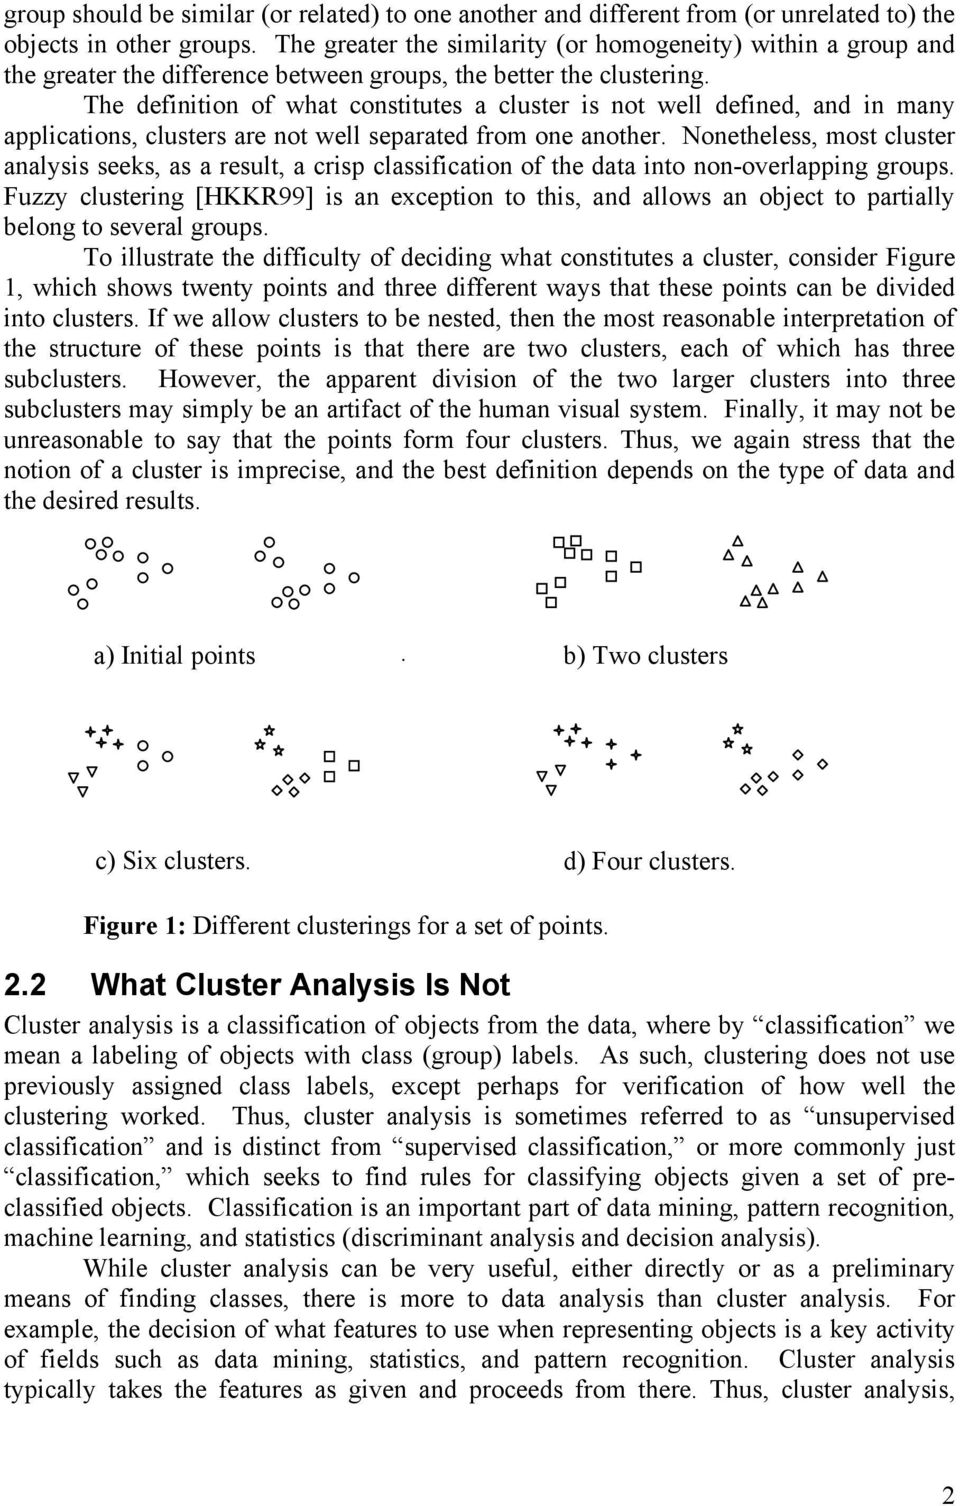 The definition of what constitutes a cluster is not well defined, and in many applications, clusters are not well separated from one another.